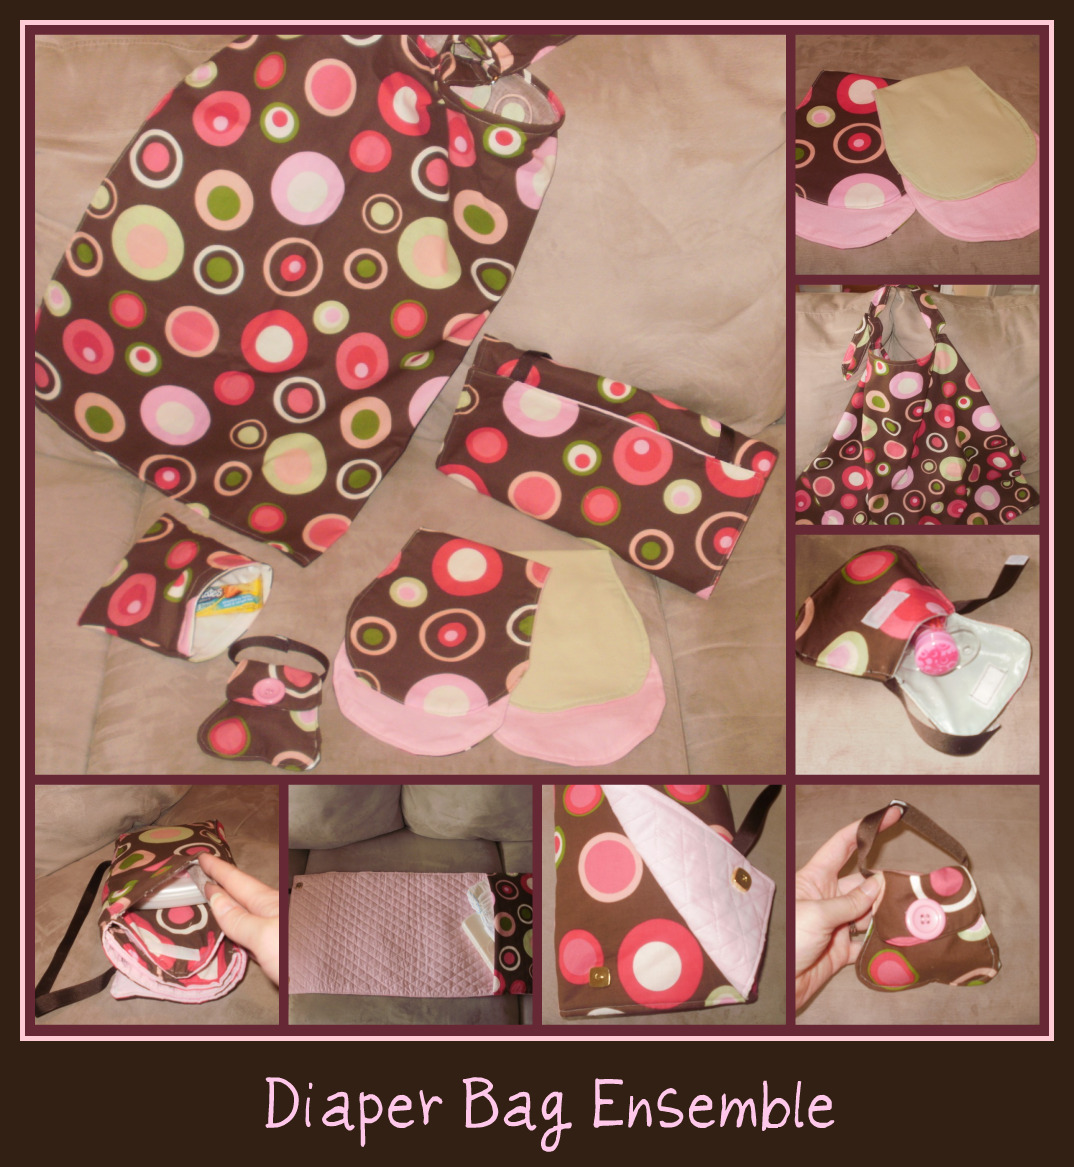 Diaper Bag Ensemble = $50